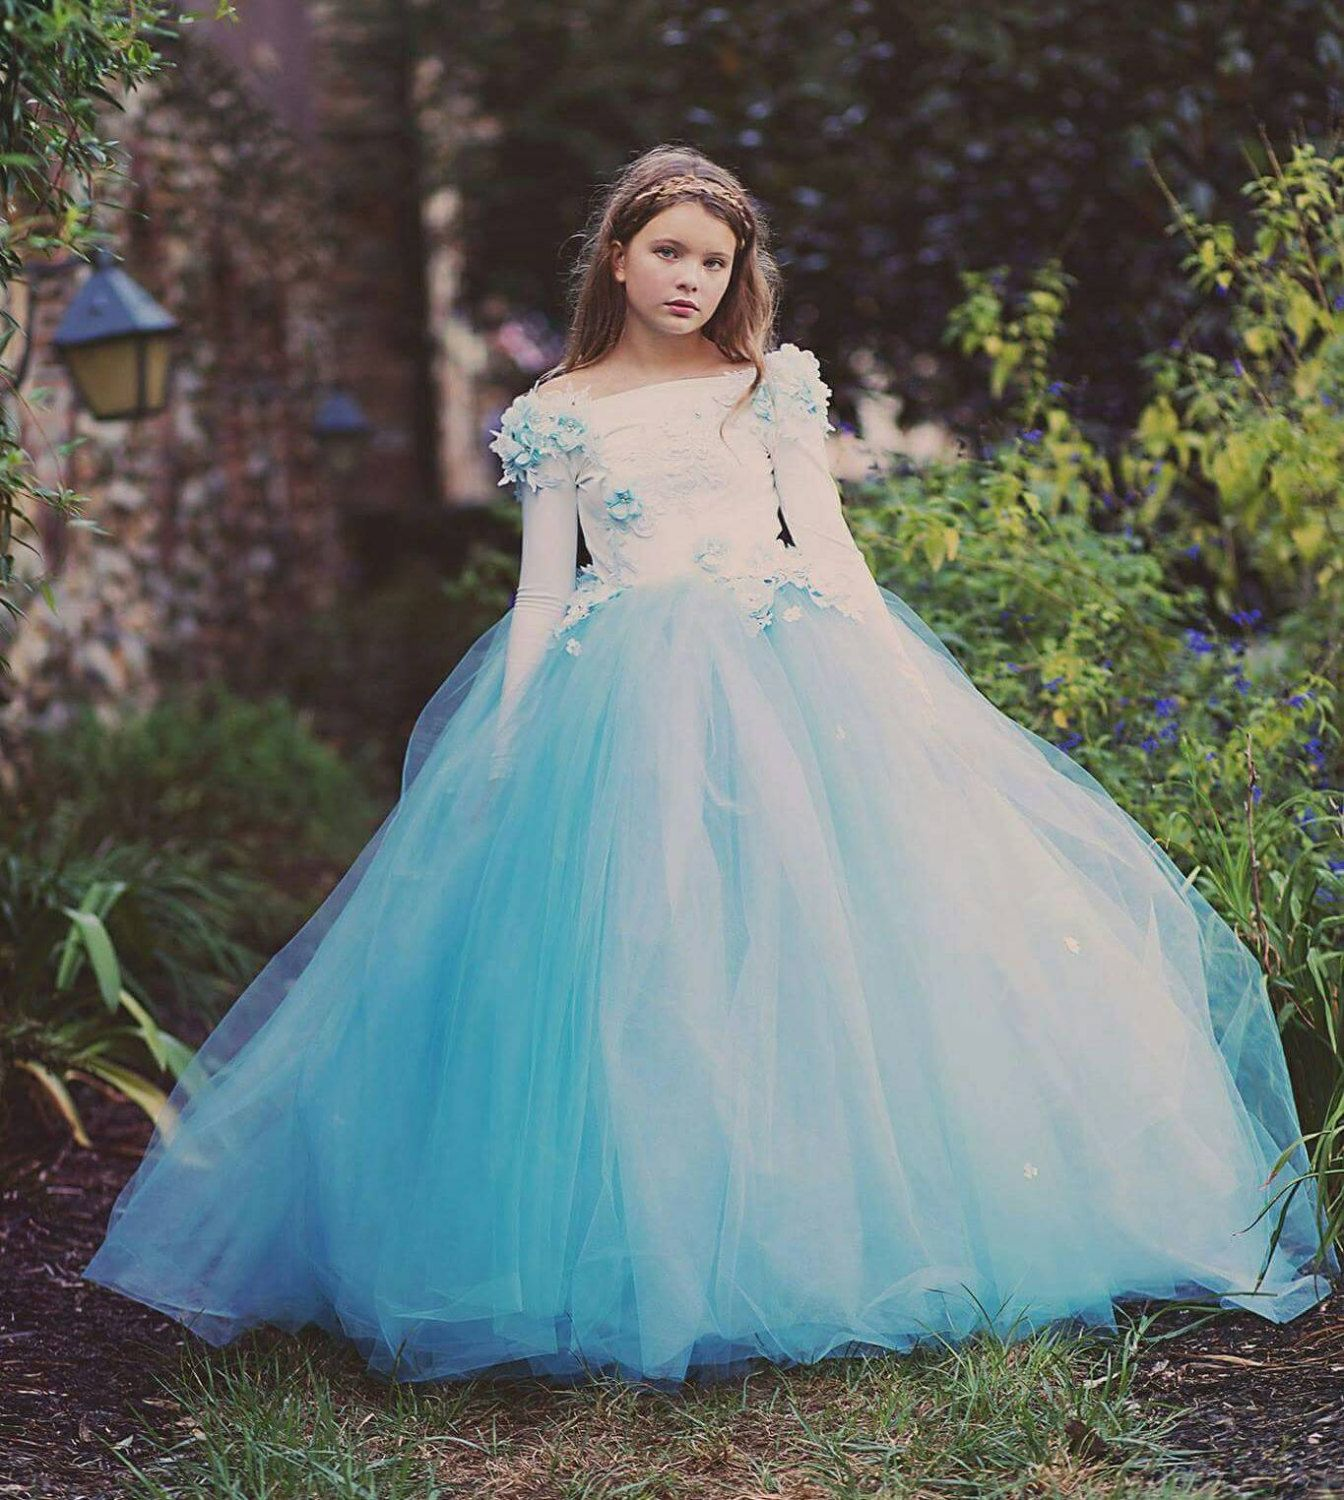 Couture cinderella inspired tulle tutu dress etsy